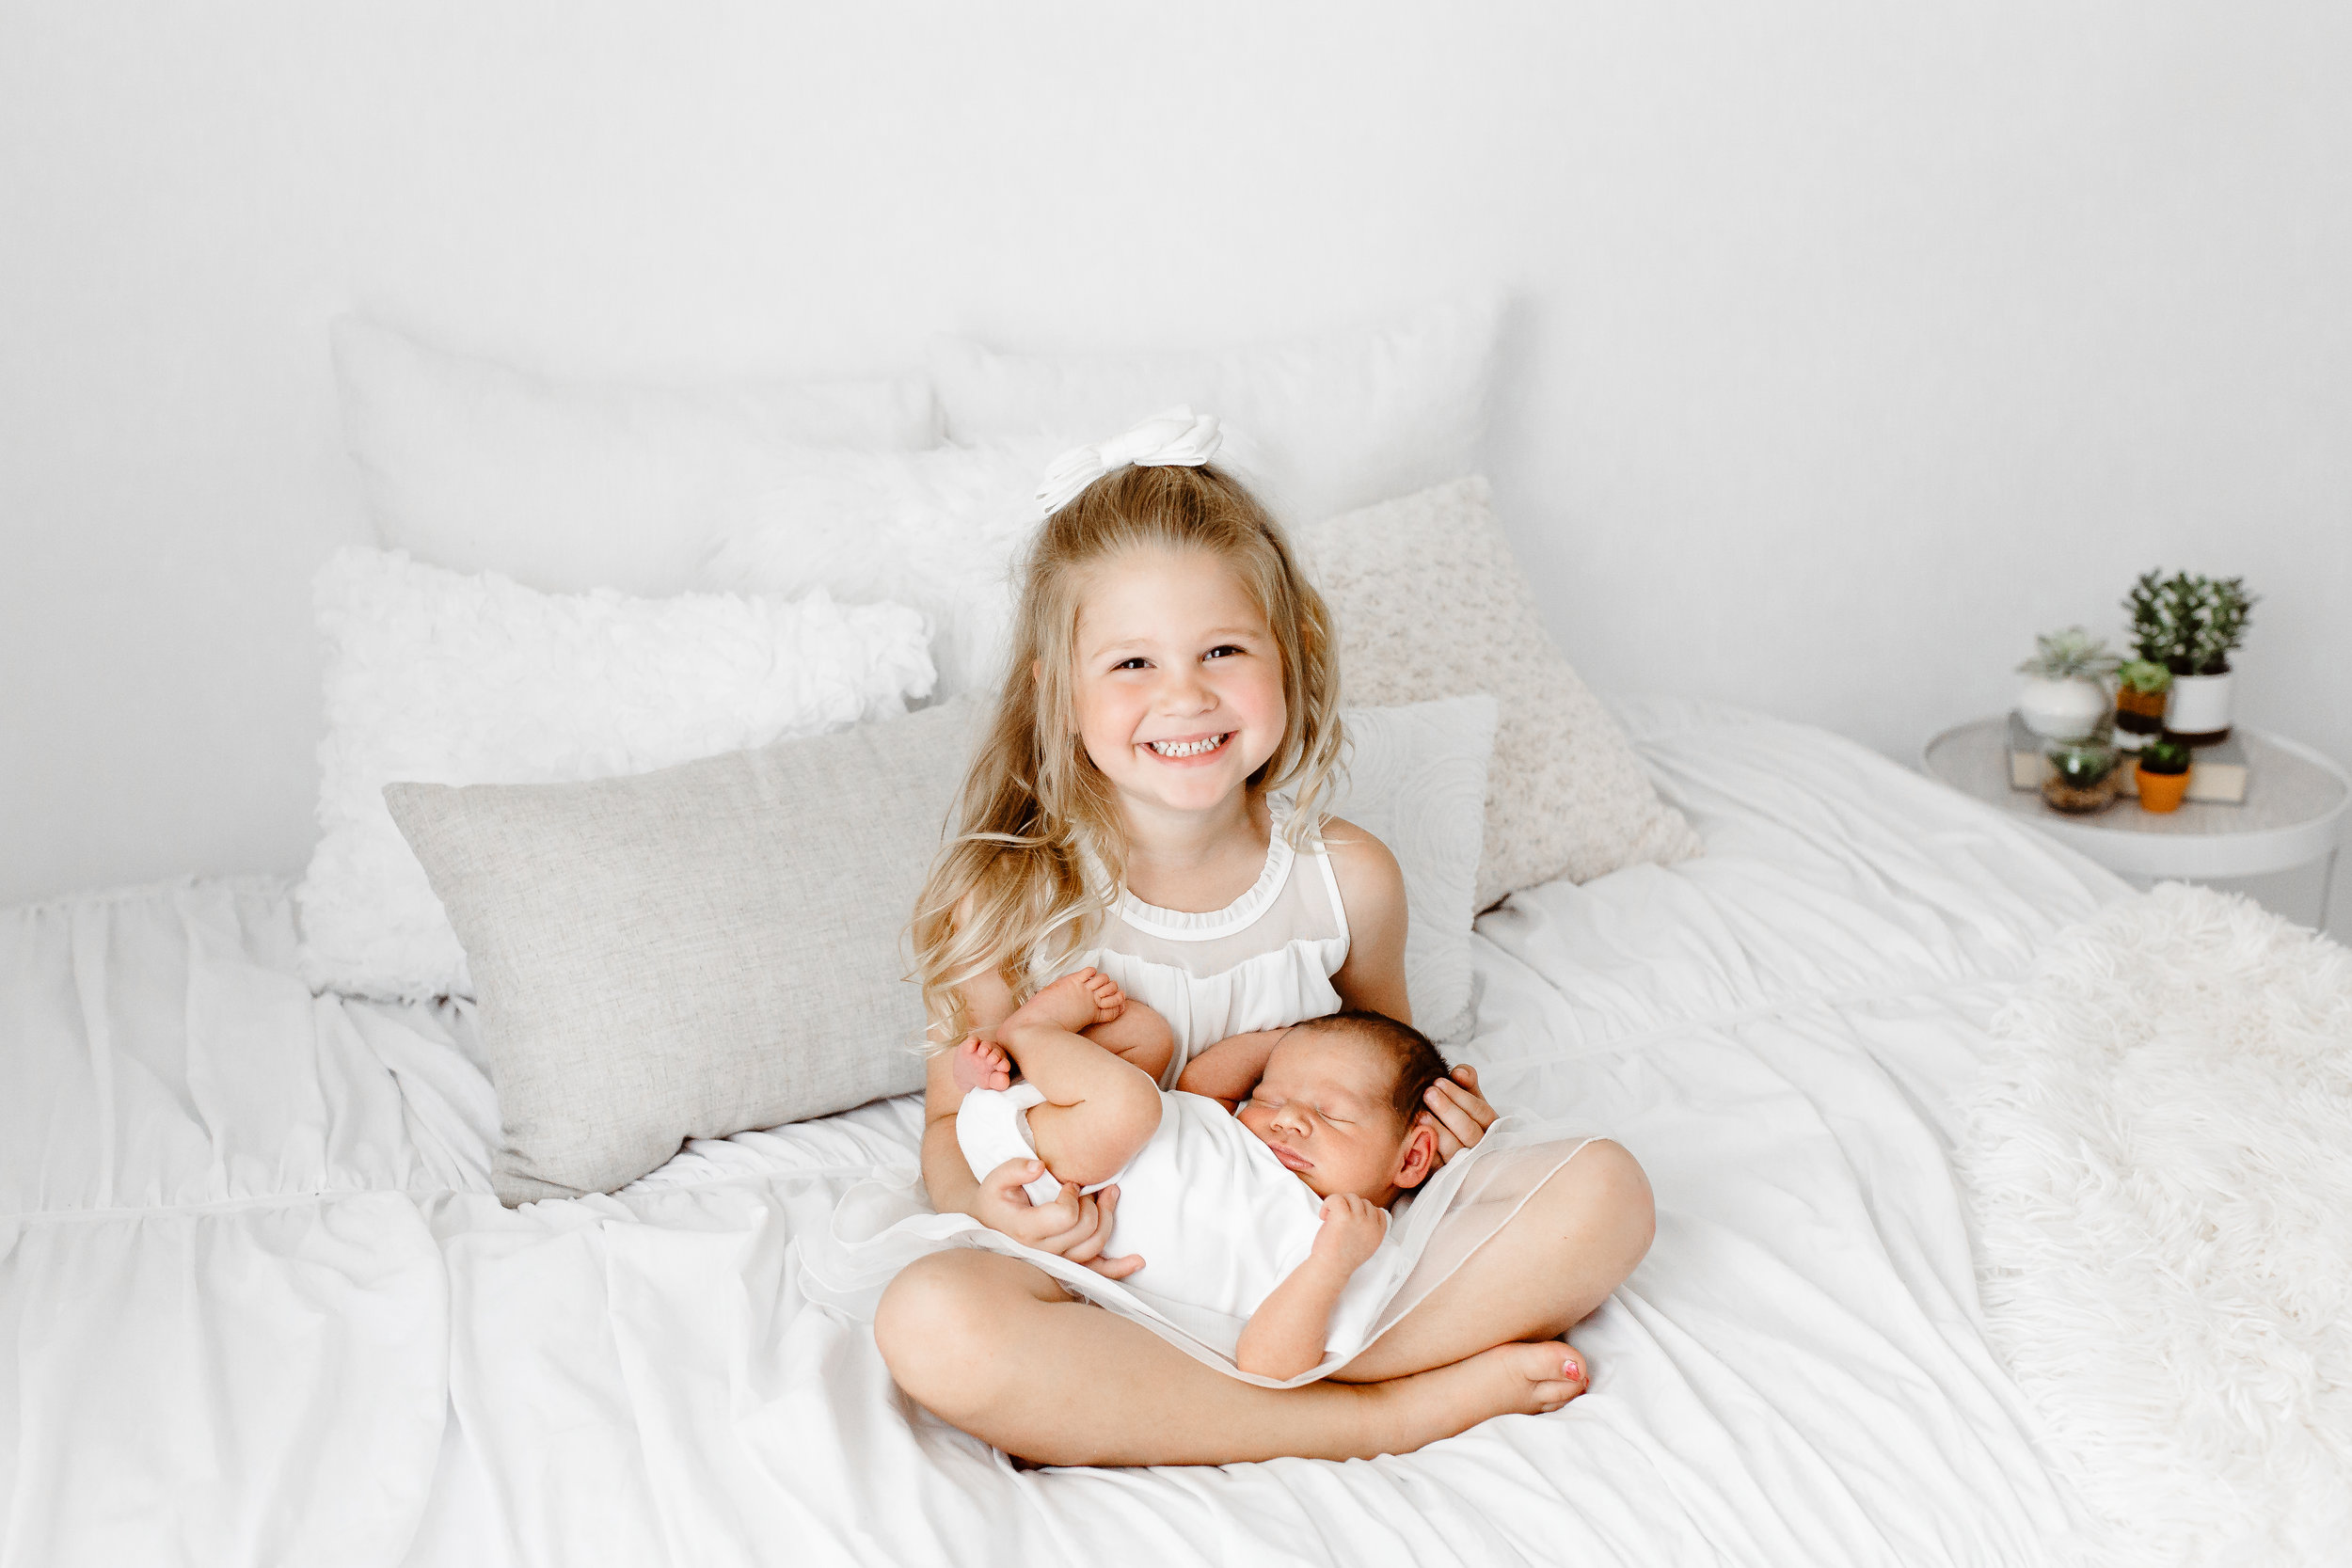 Sarah Cropper Photography is a Columbus newborn photographer who specializes in natural, lifestyle portraits of newborns and families in her Grove City residential studio.